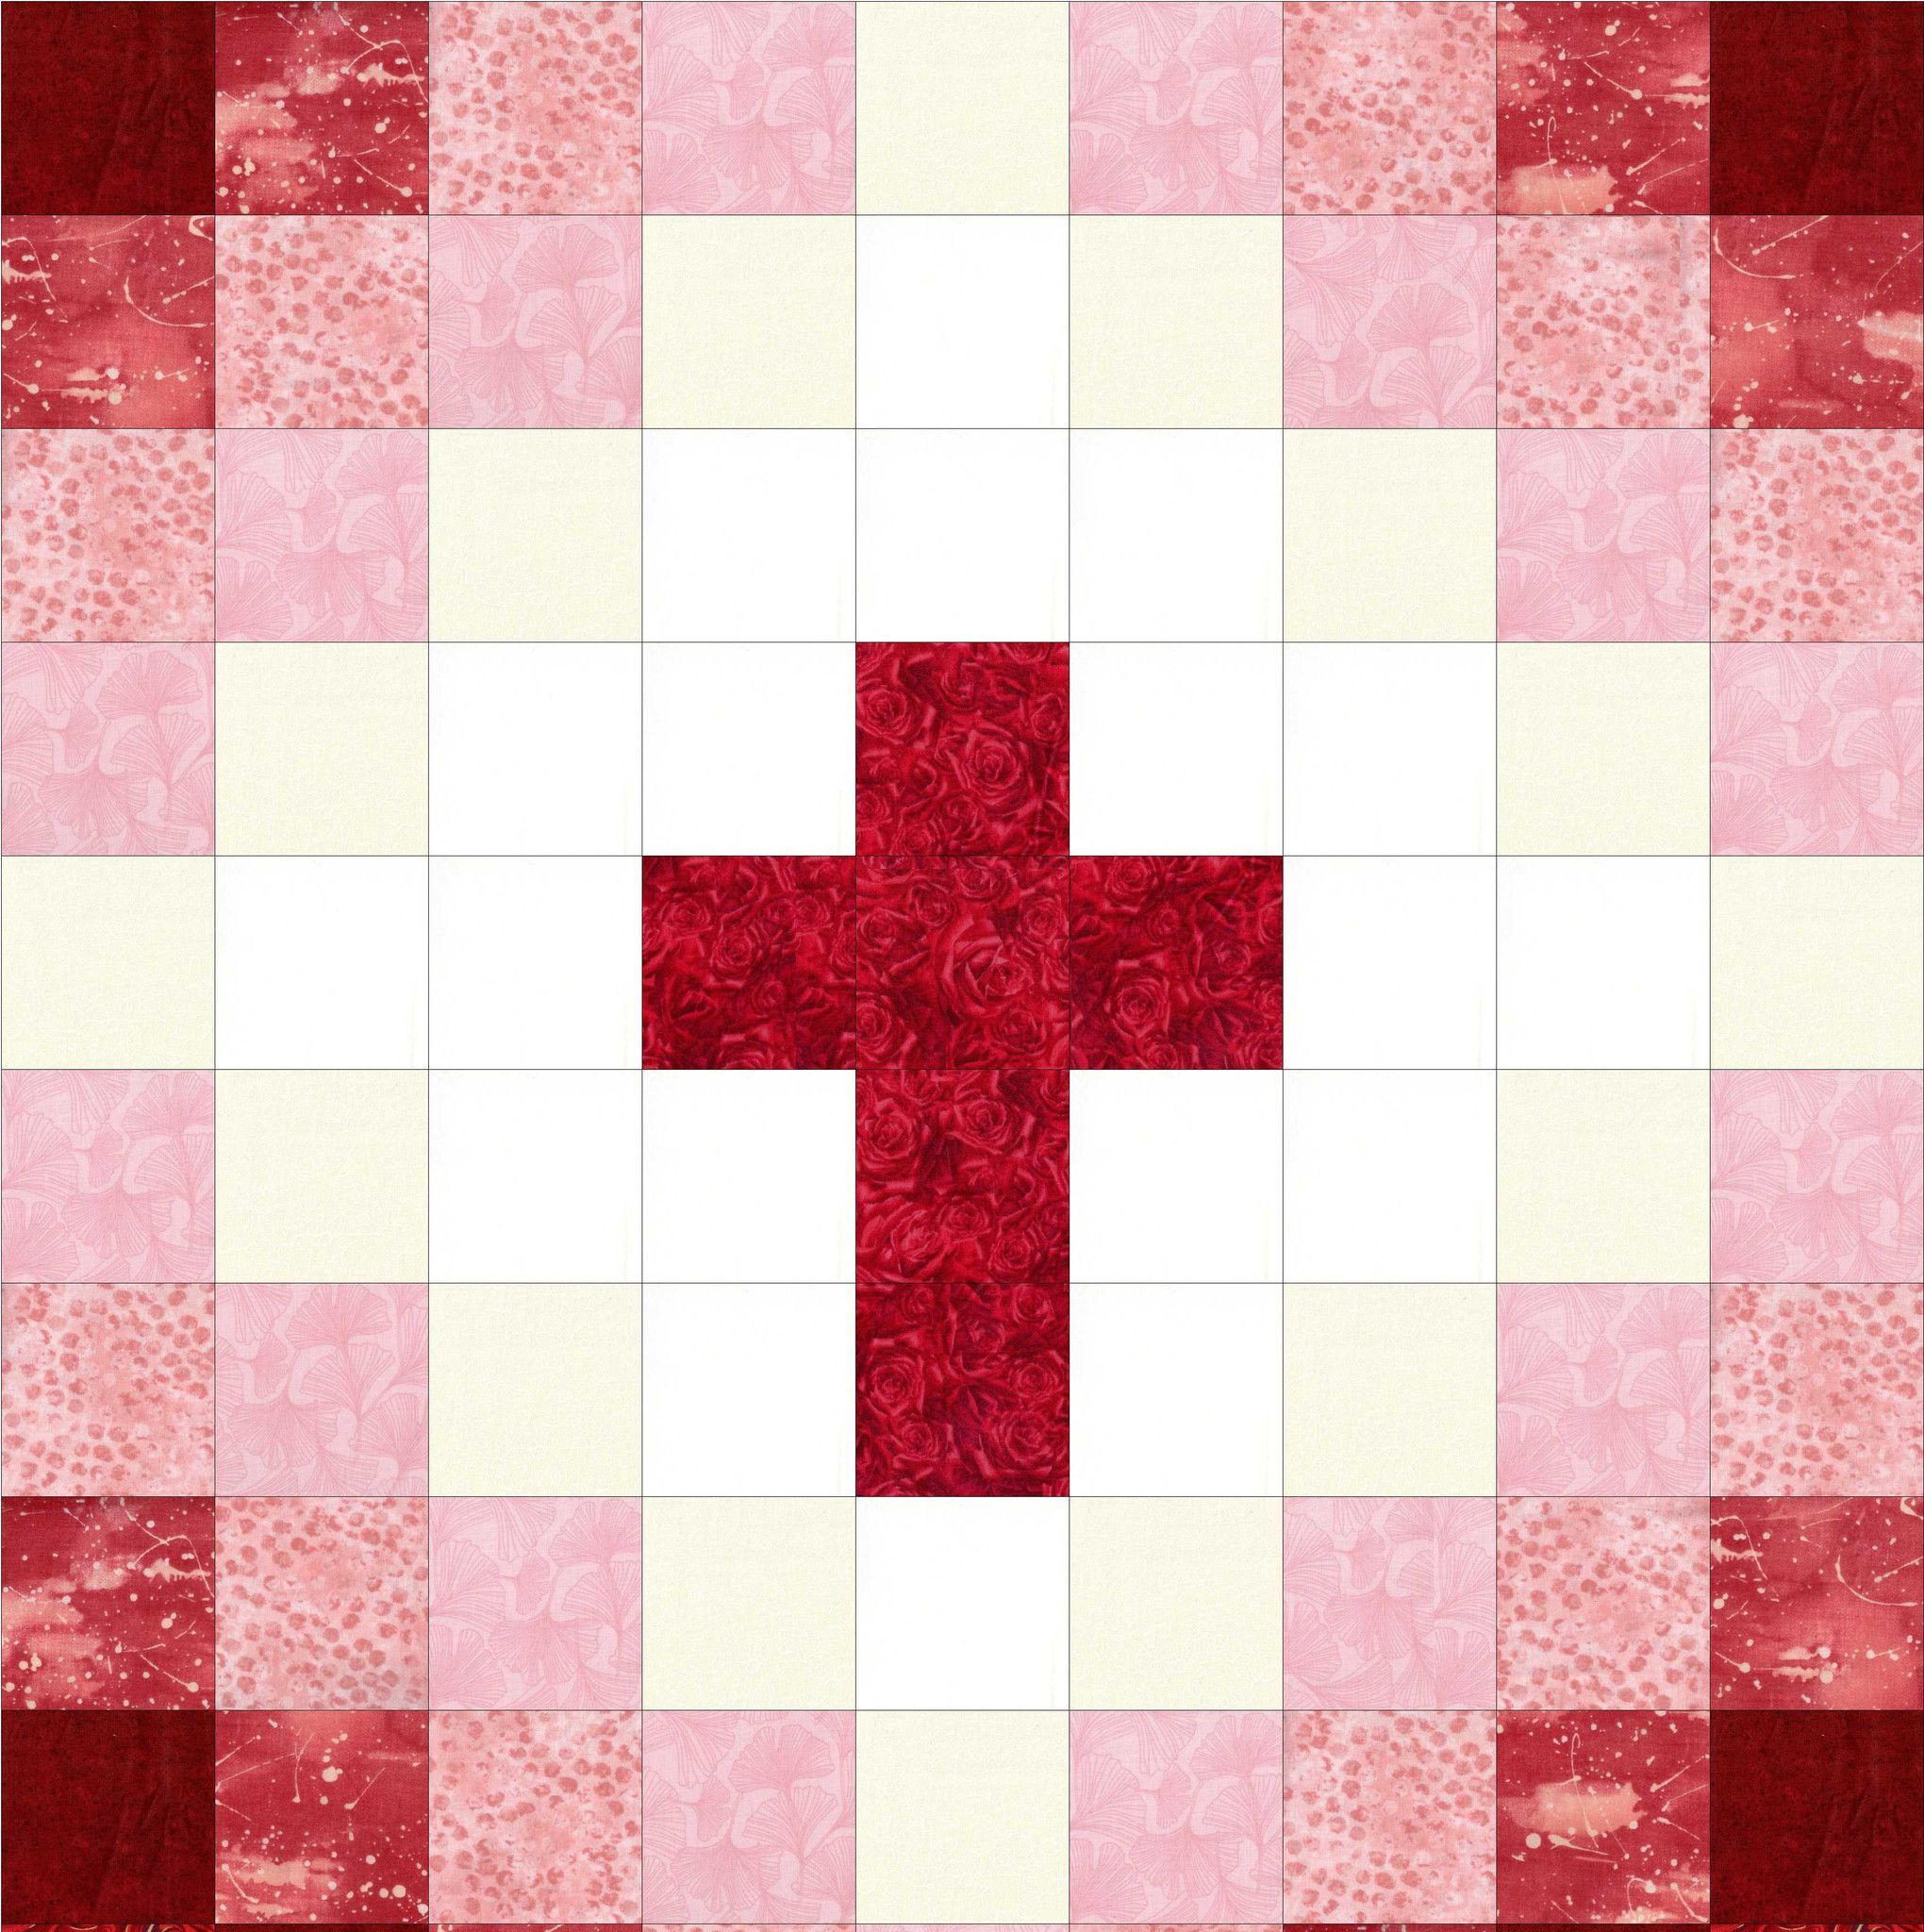 This easy to sew religious cross quilt kit can be made into a perfect baby quilt with beautiful red tones from white to dark red. Perfect beginner quilt kit for wall-hangings, baby quilts, table toppe